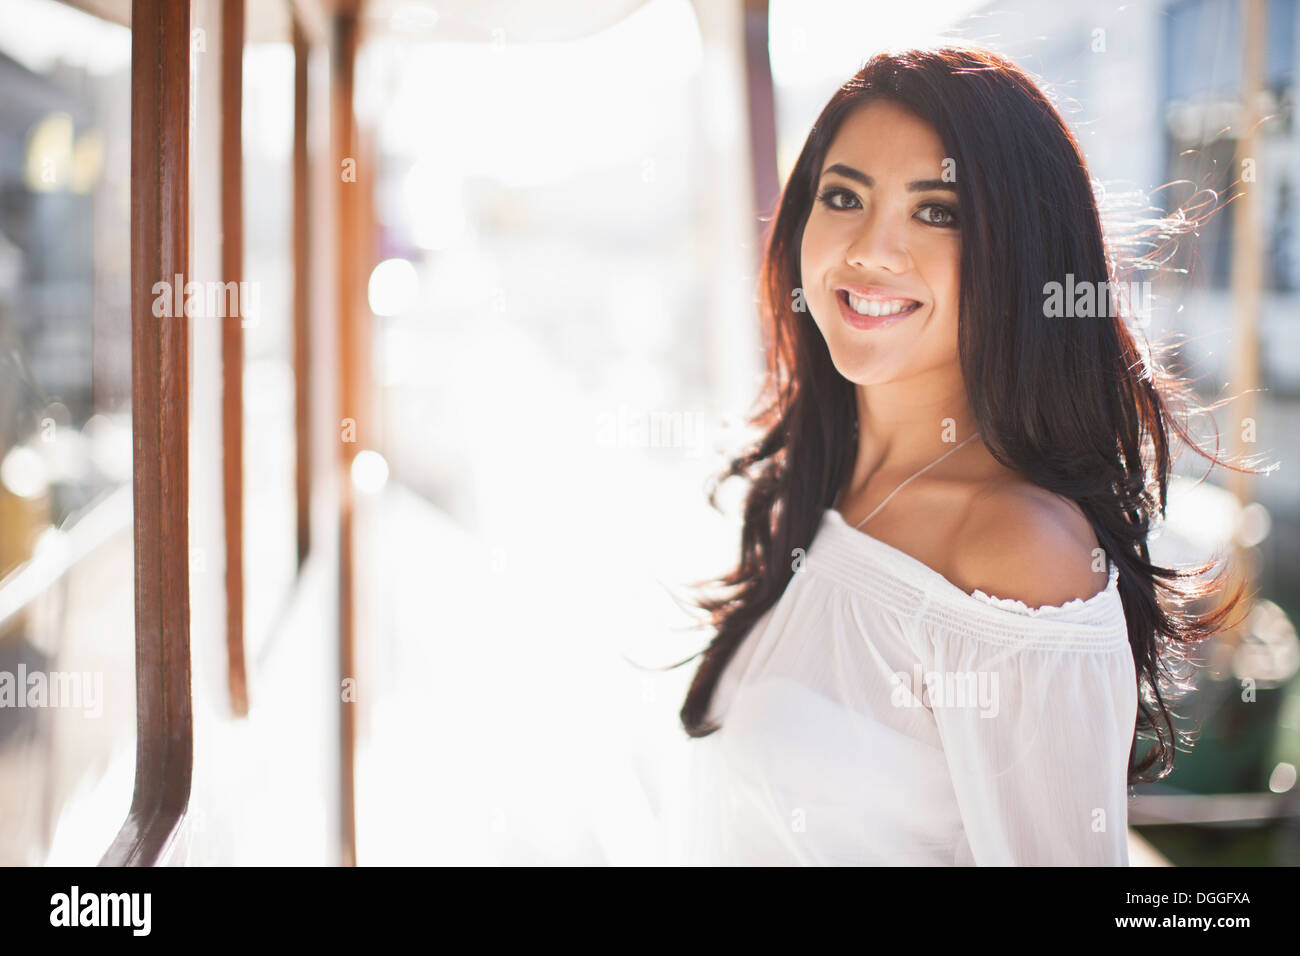 Portrait of young woman on yacht, San Francisco, California, USA - Stock Image